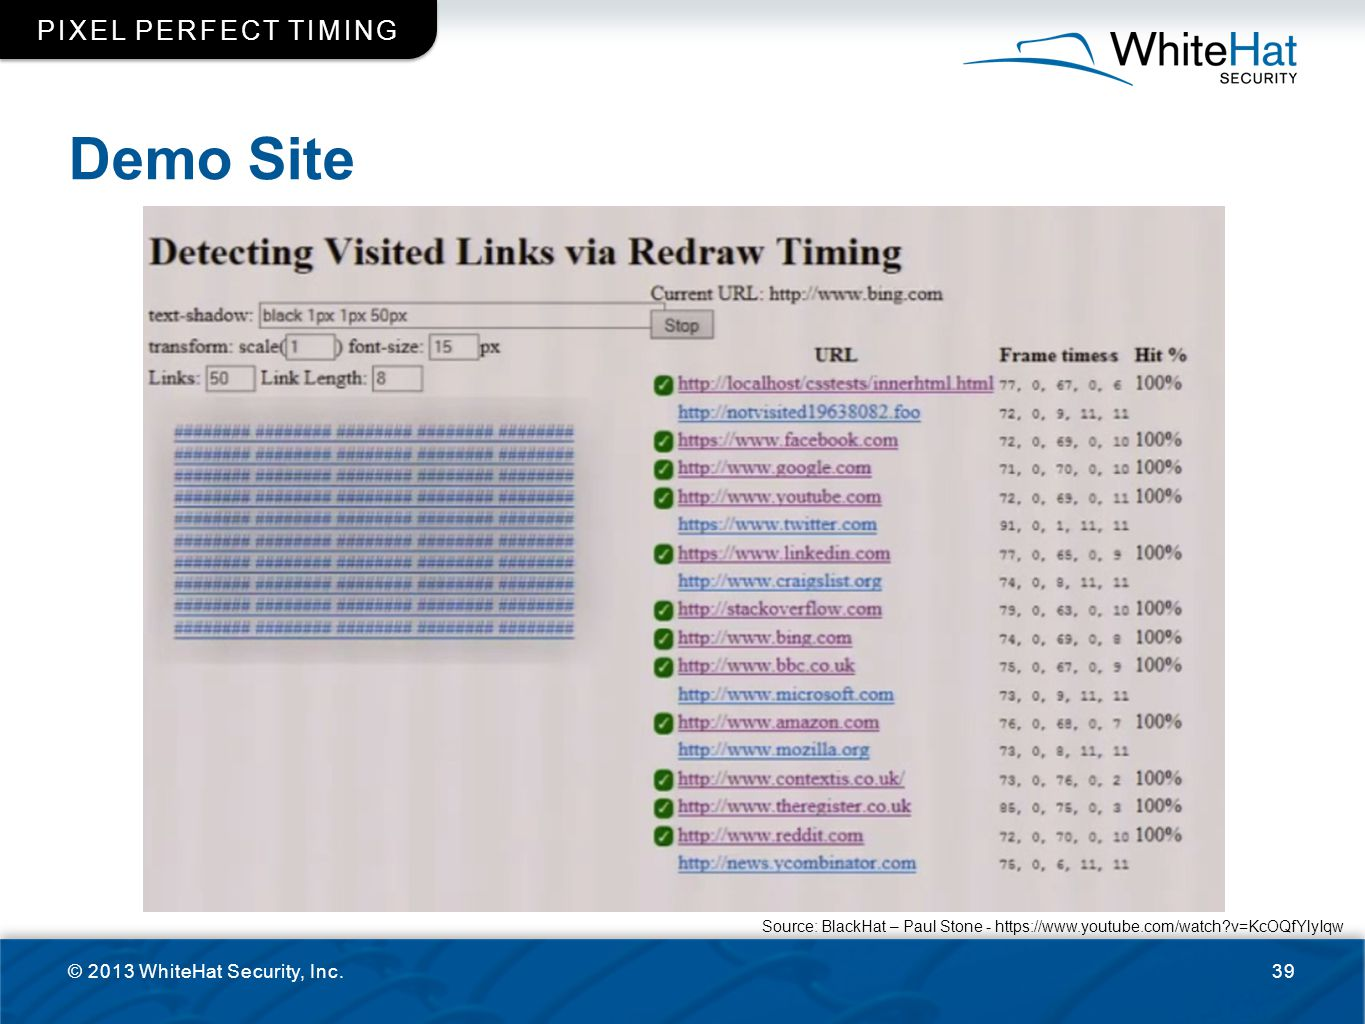 Demo Site Pixel perfect timing © 2013 WhiteHat Security, Inc.